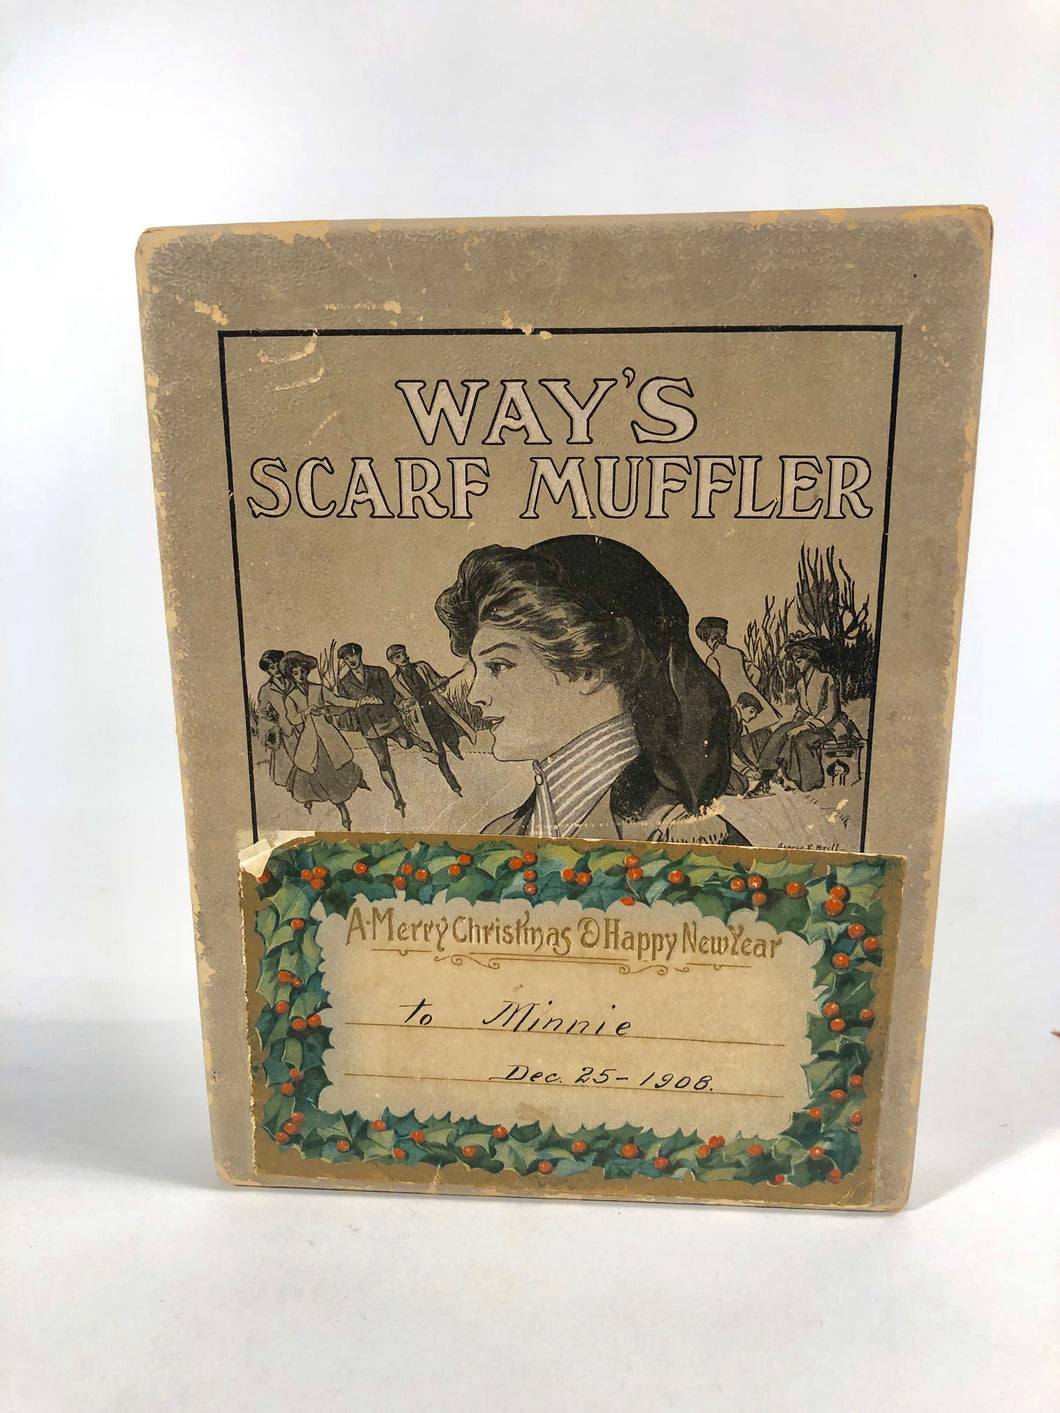 1908 WAY'S SCARF MUFFLER Box., Christmas Gift with Tag,